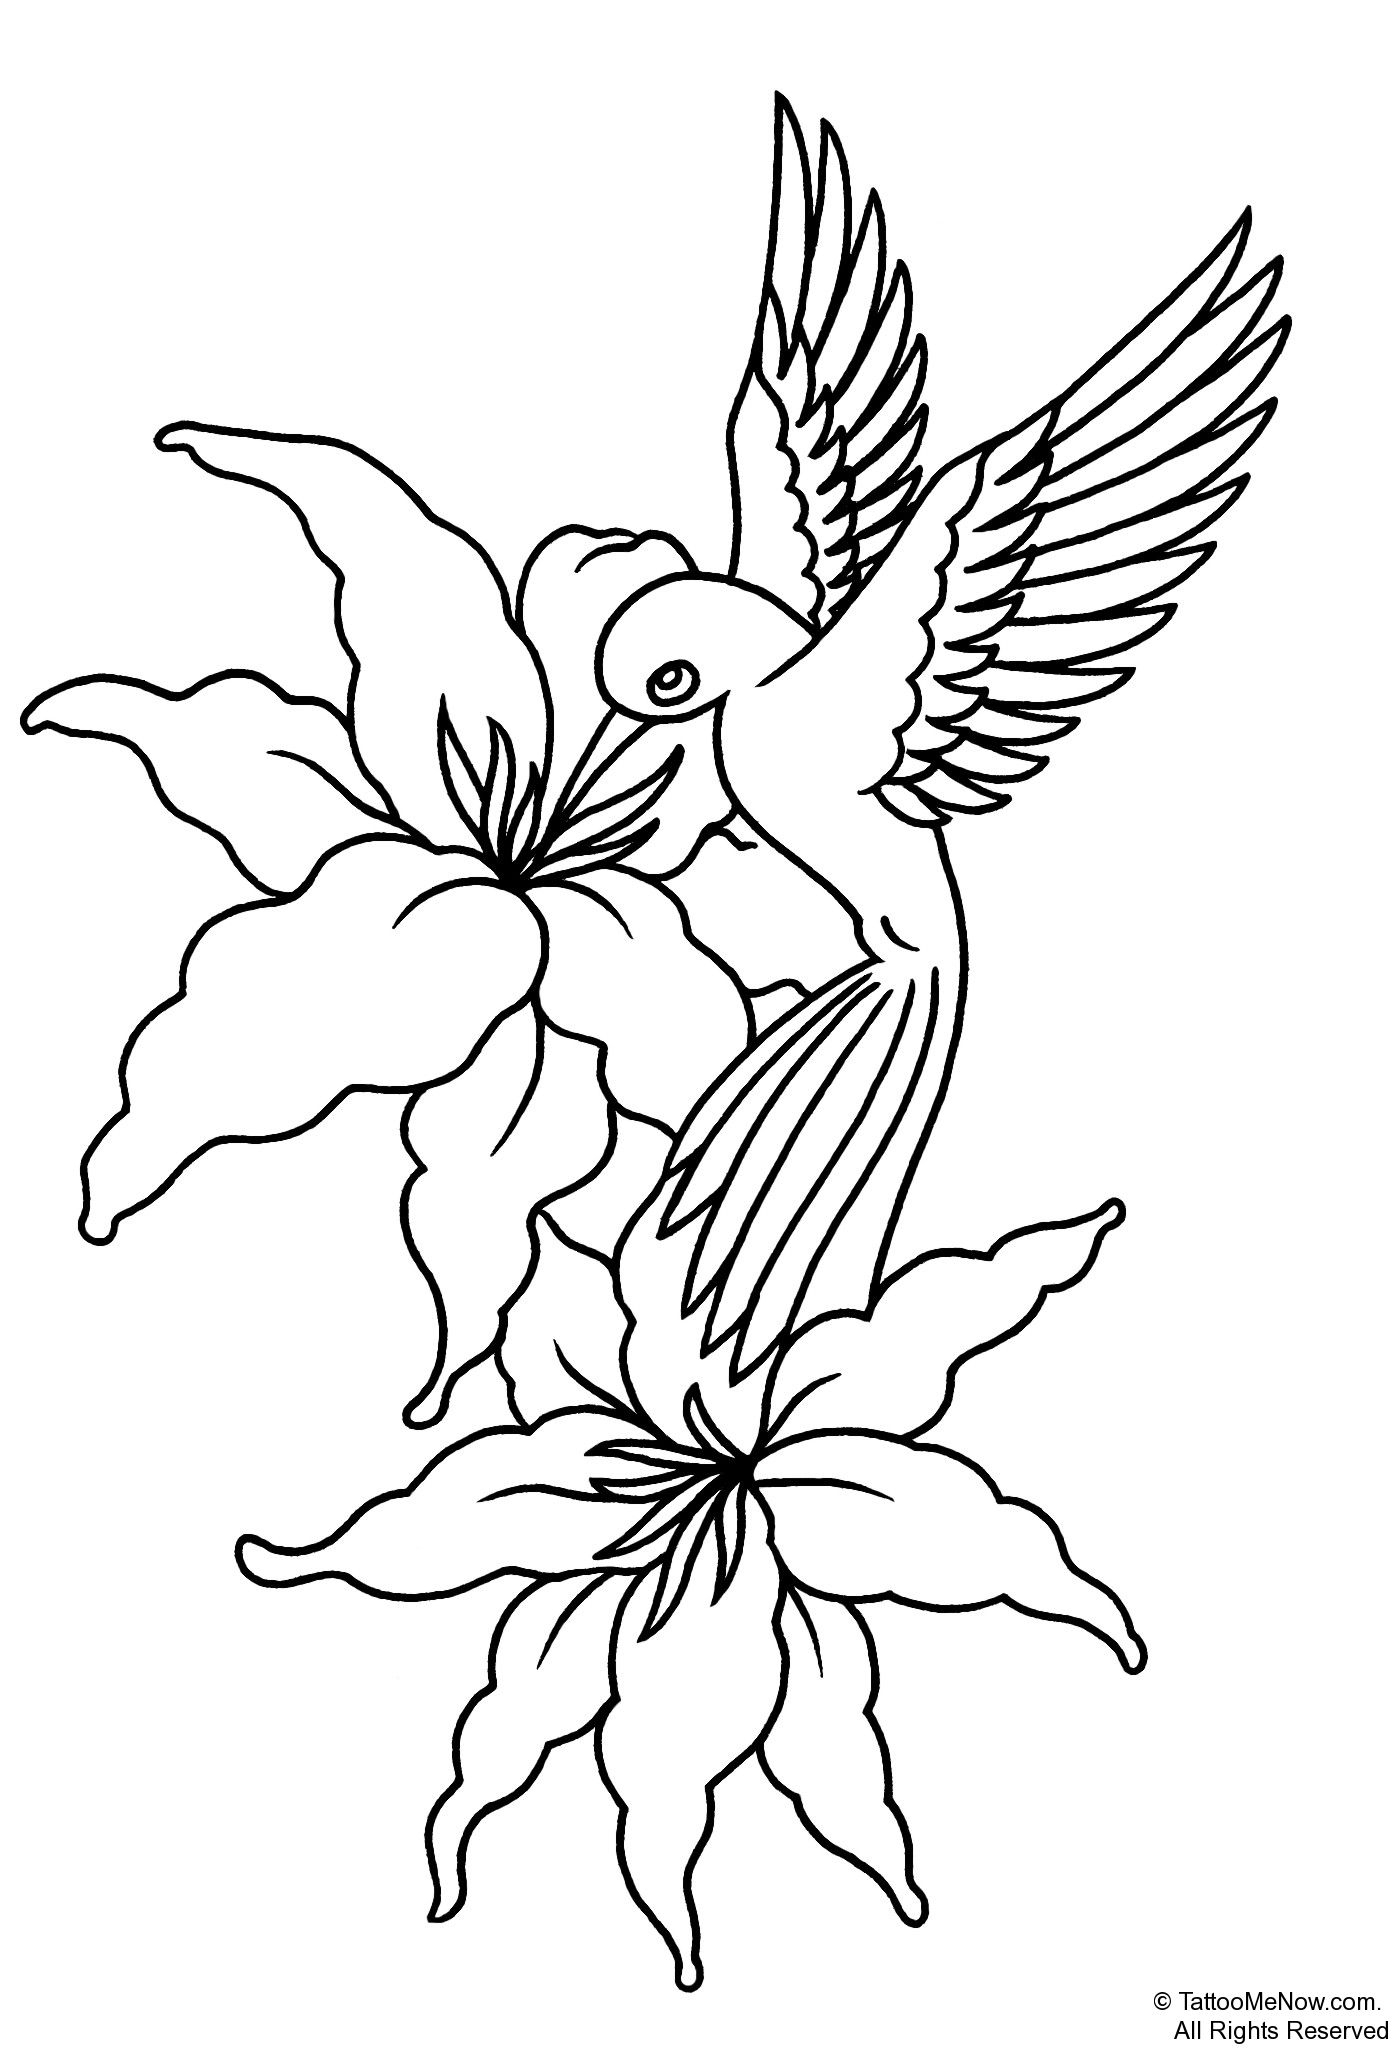 Free Printable Tattoo Stencils | Your Free Tattoo Designs & Stencils - Free Printable Tattoo Flash